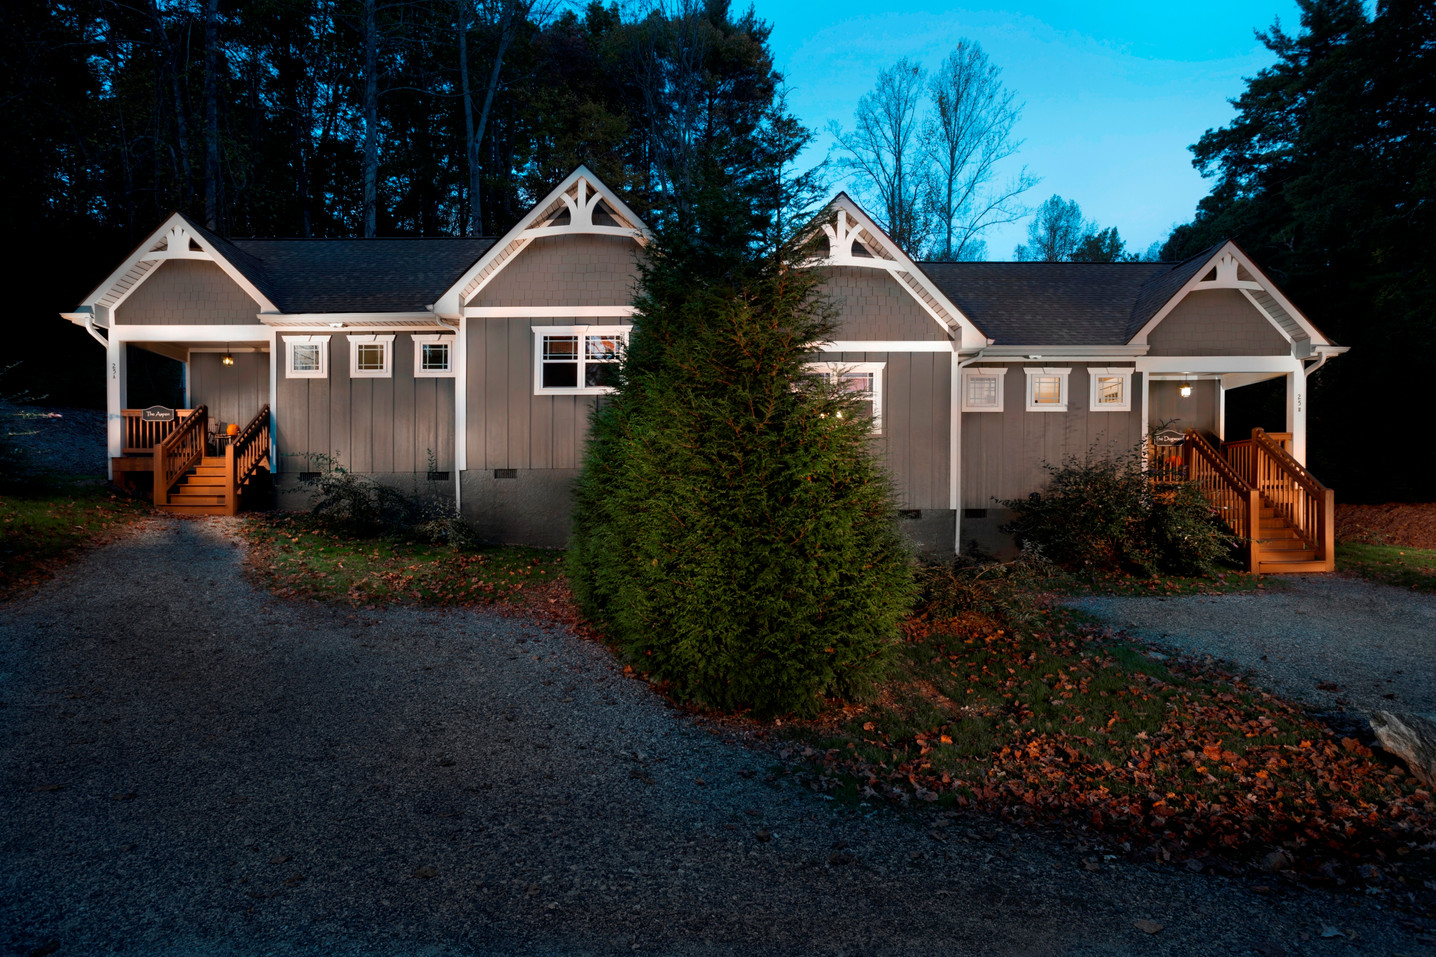 The Aspen and Dogwood cottages